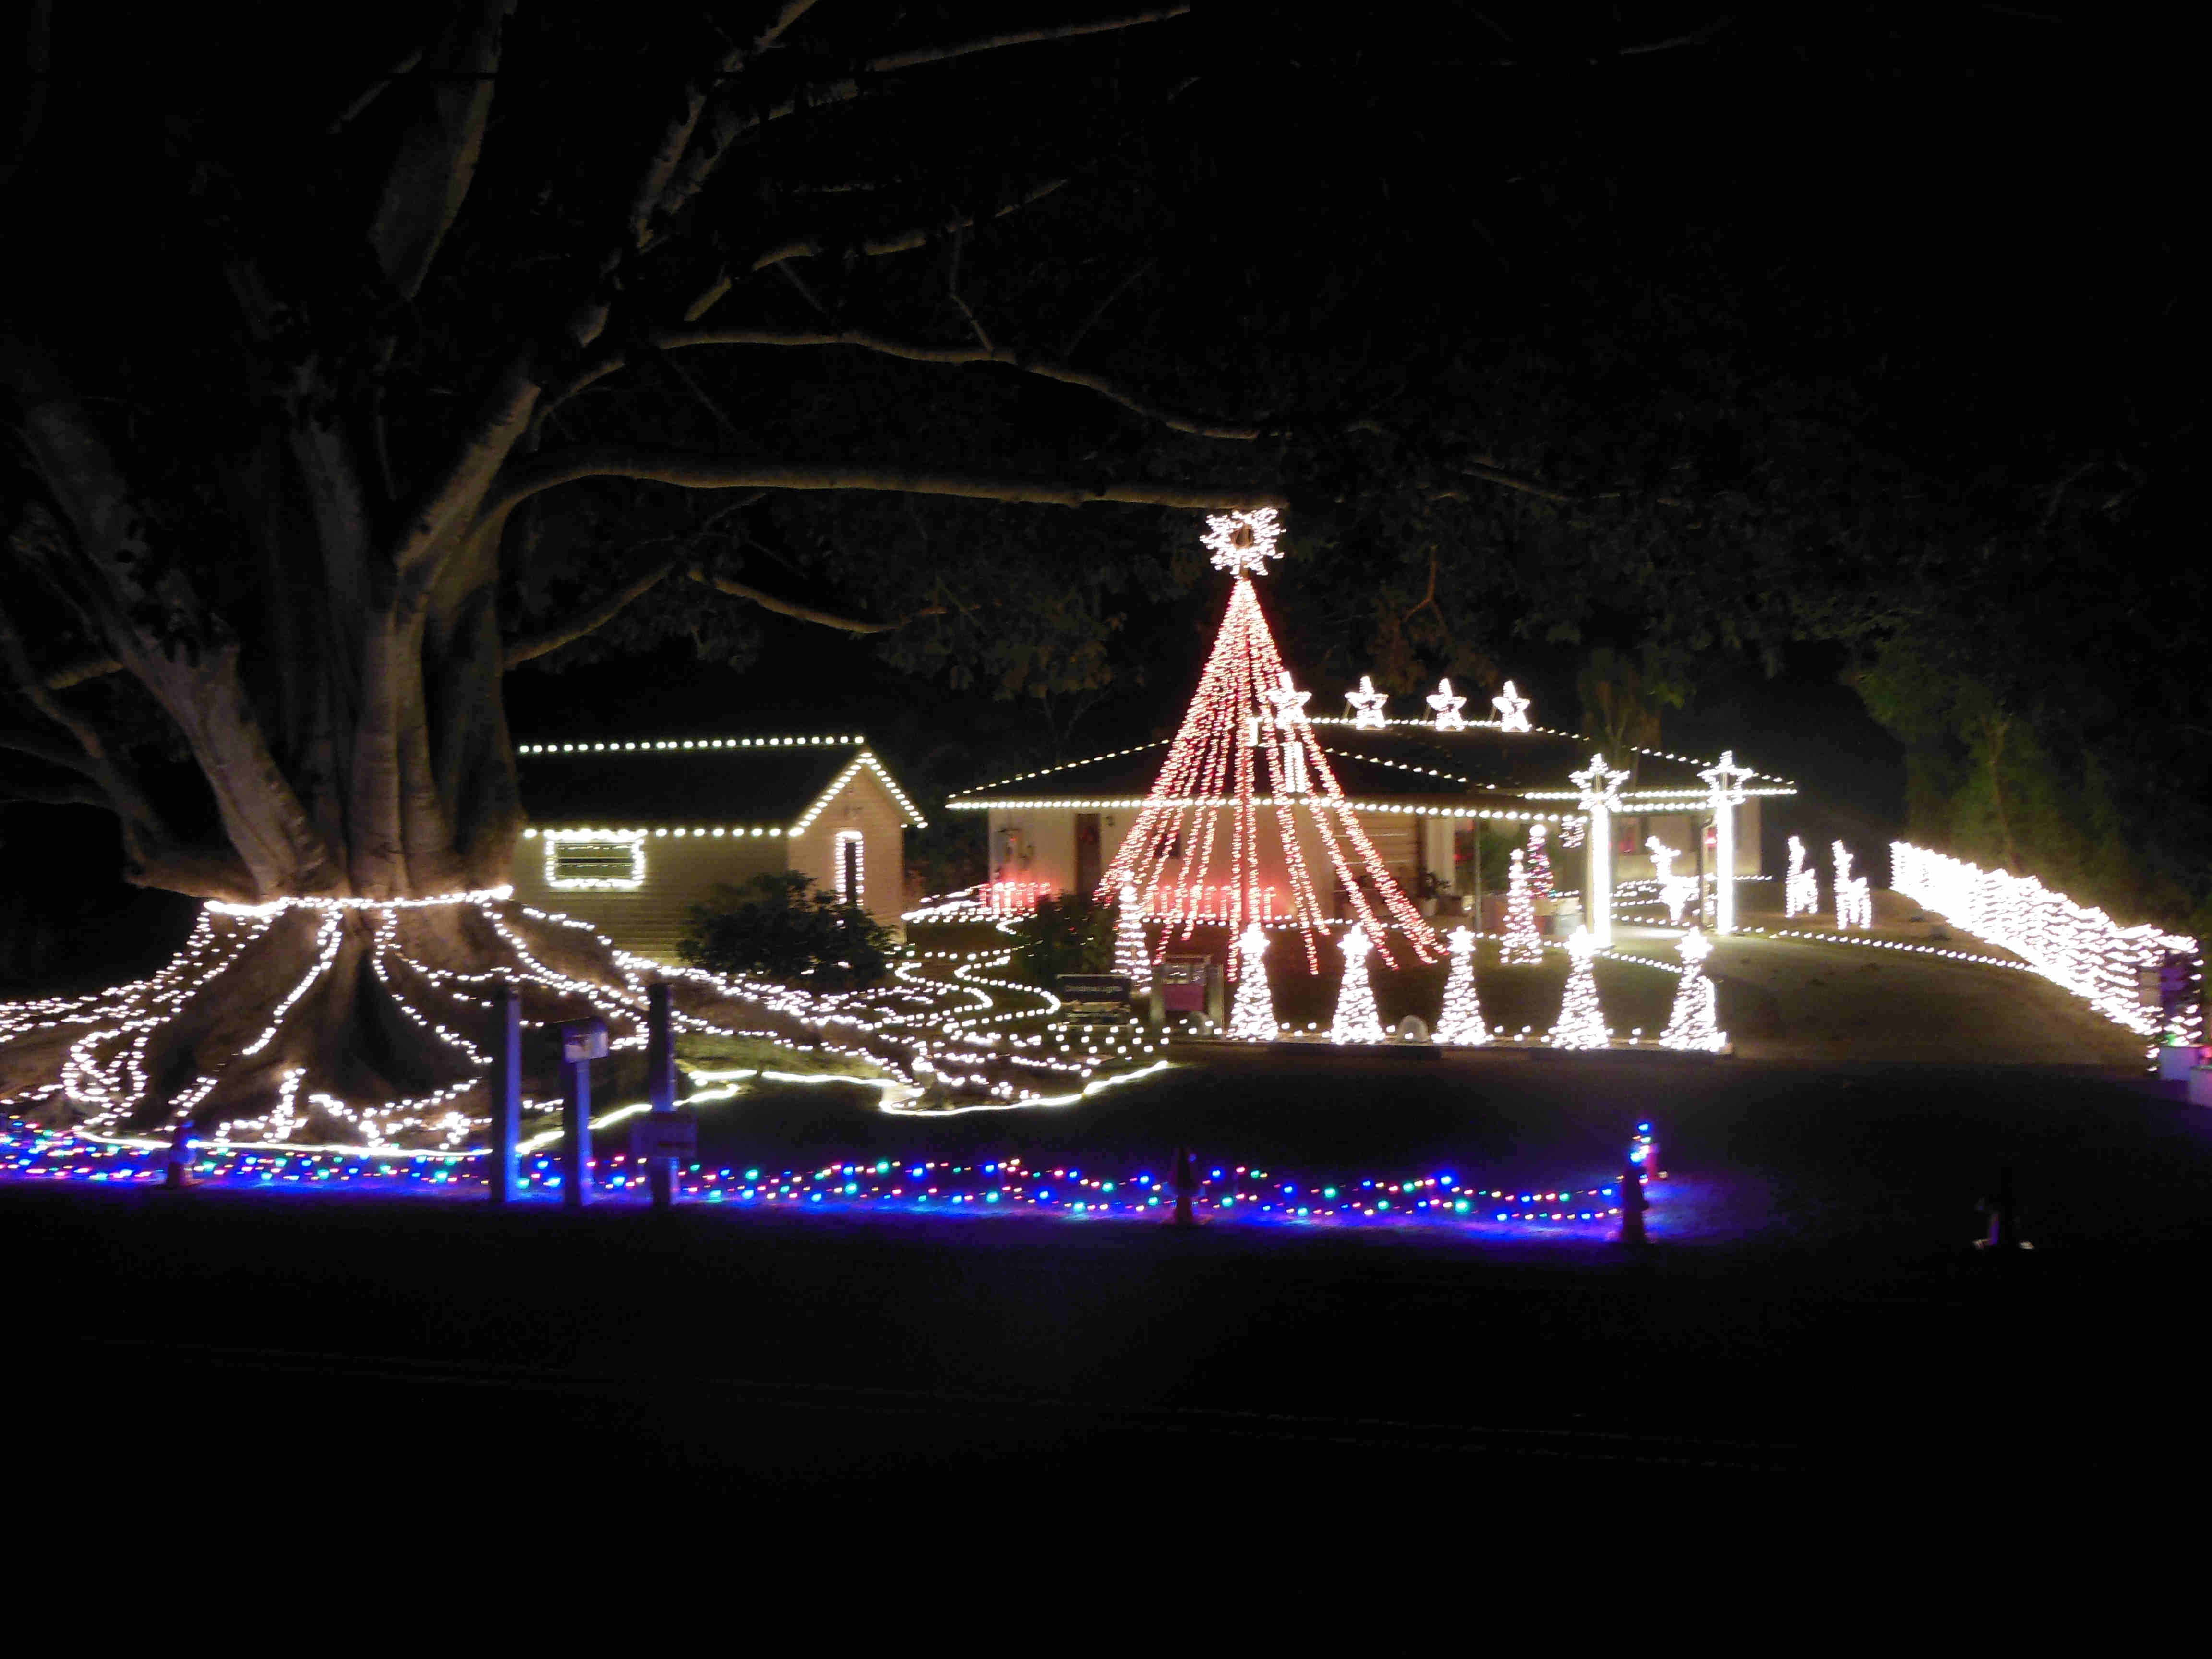 The Over The Top Christmas Lights site which is also part of the Mysore Fig Tree site.